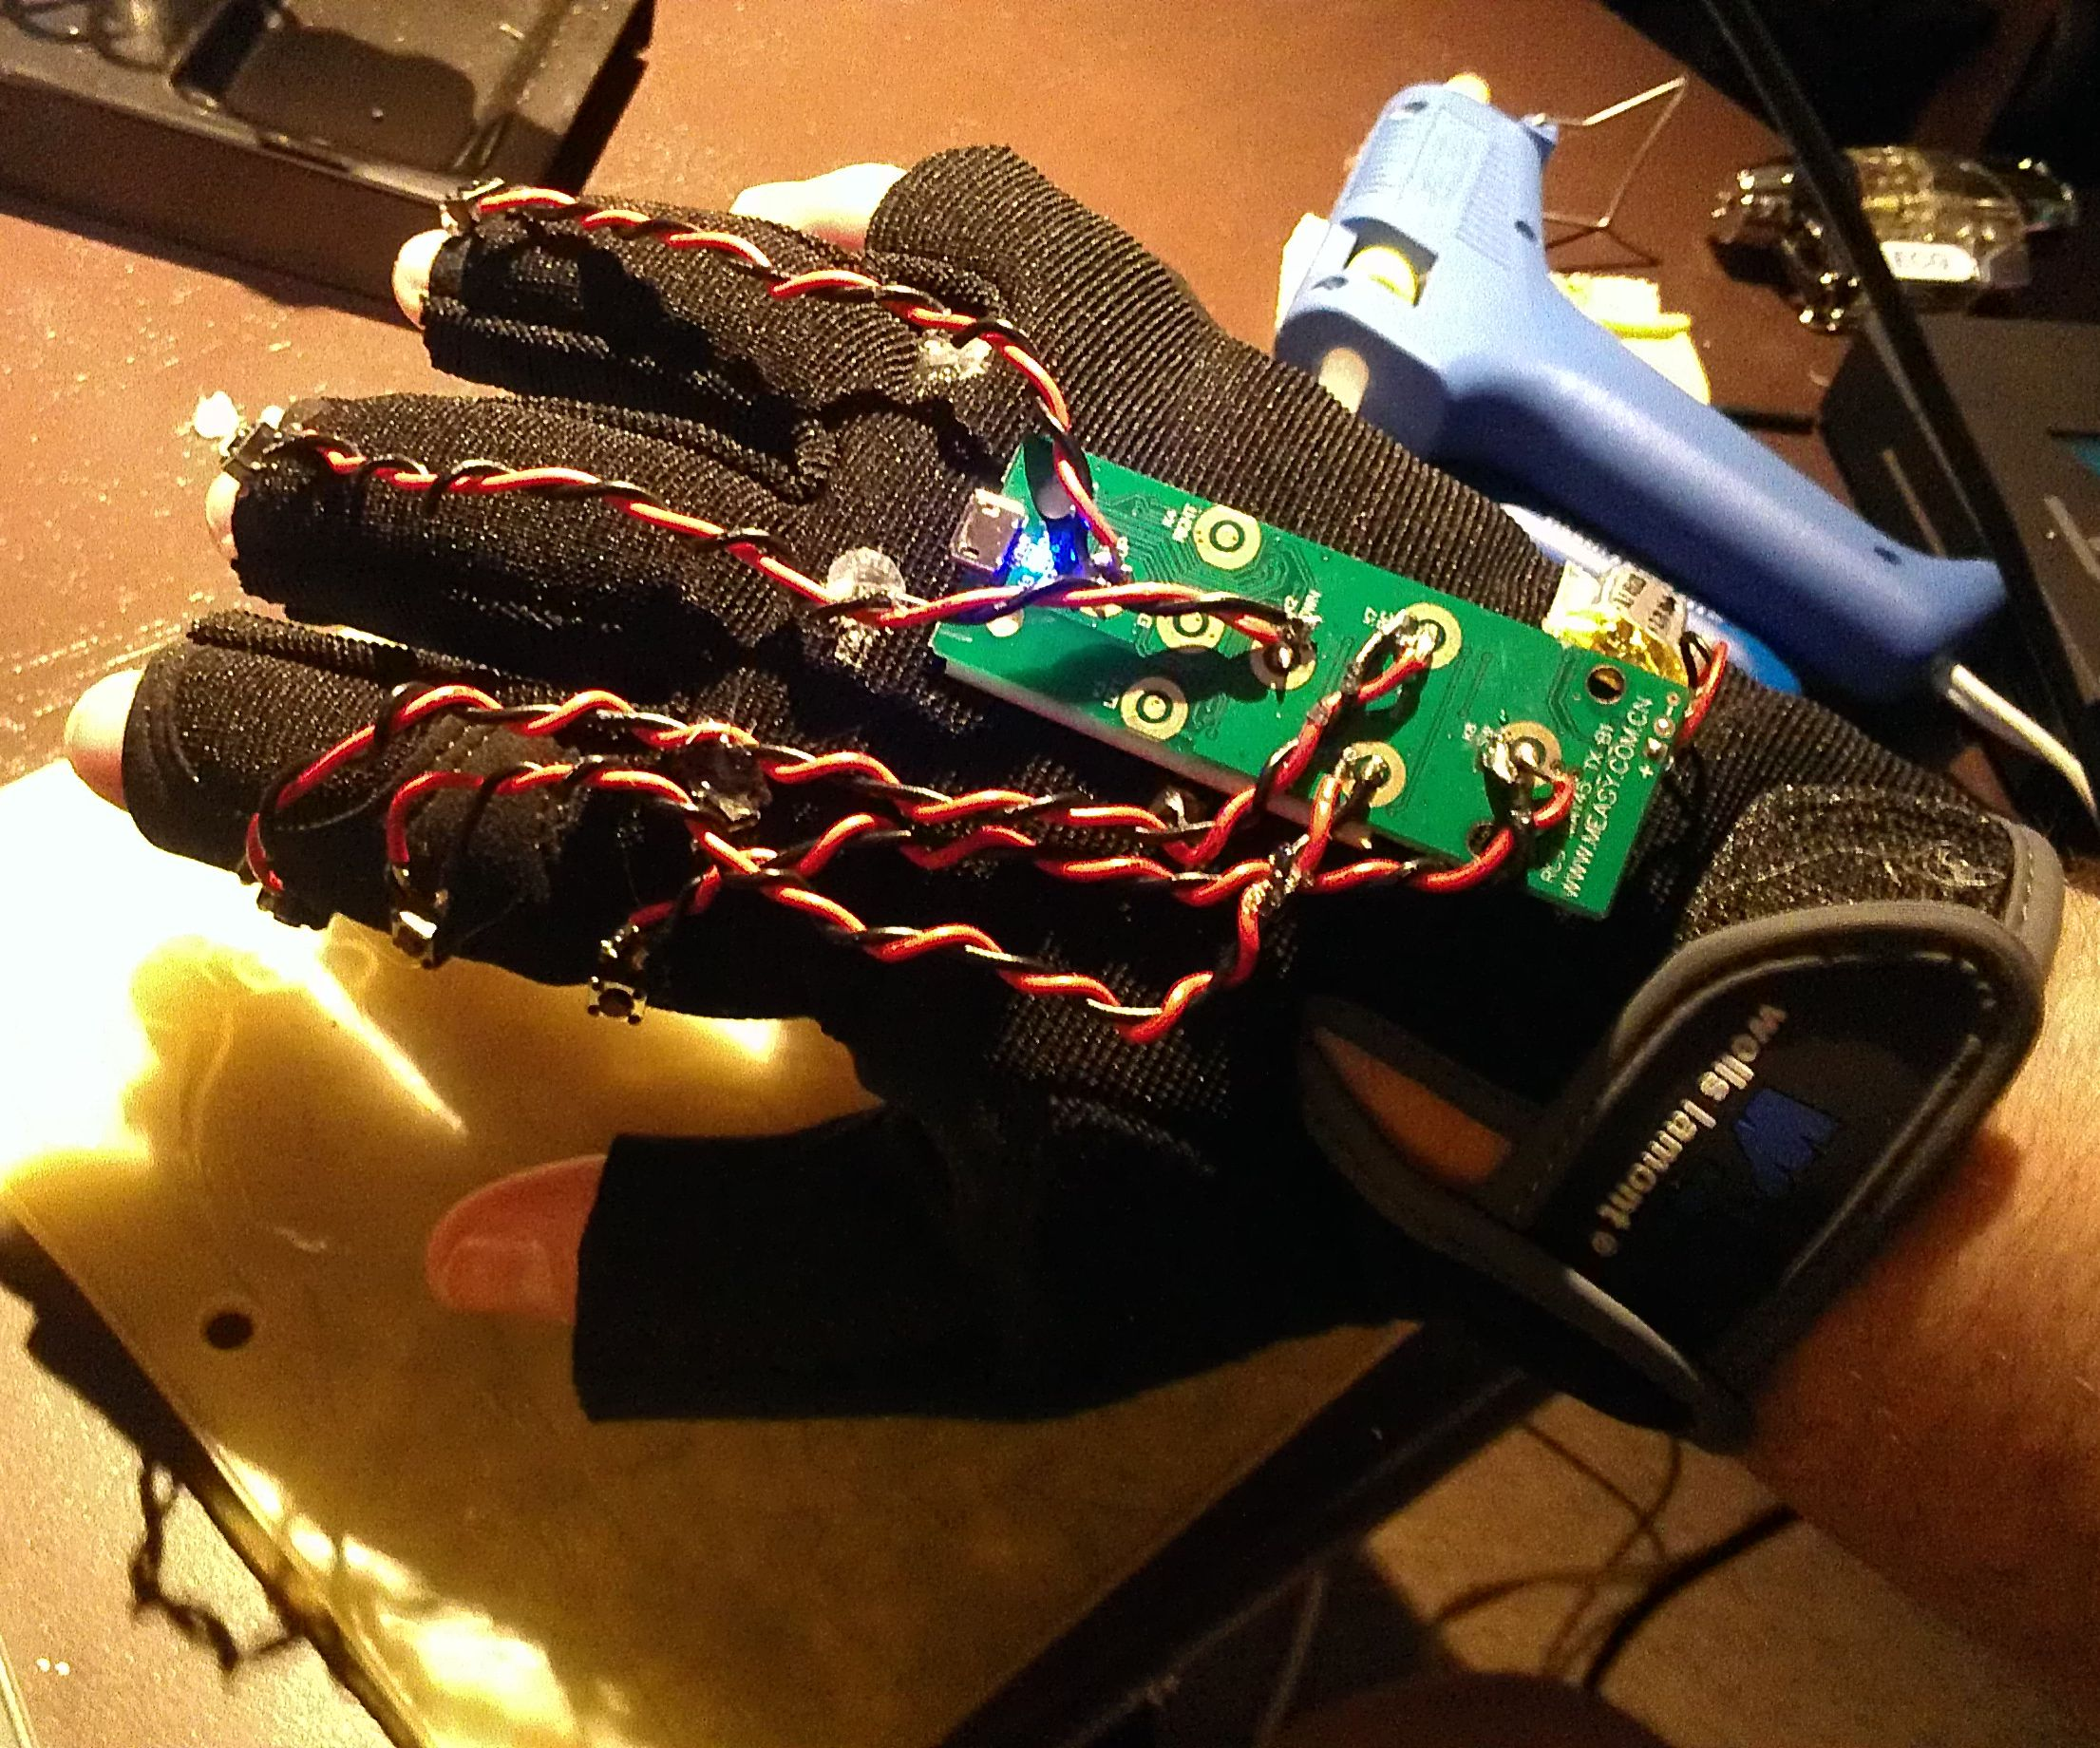 DIY Data Glove